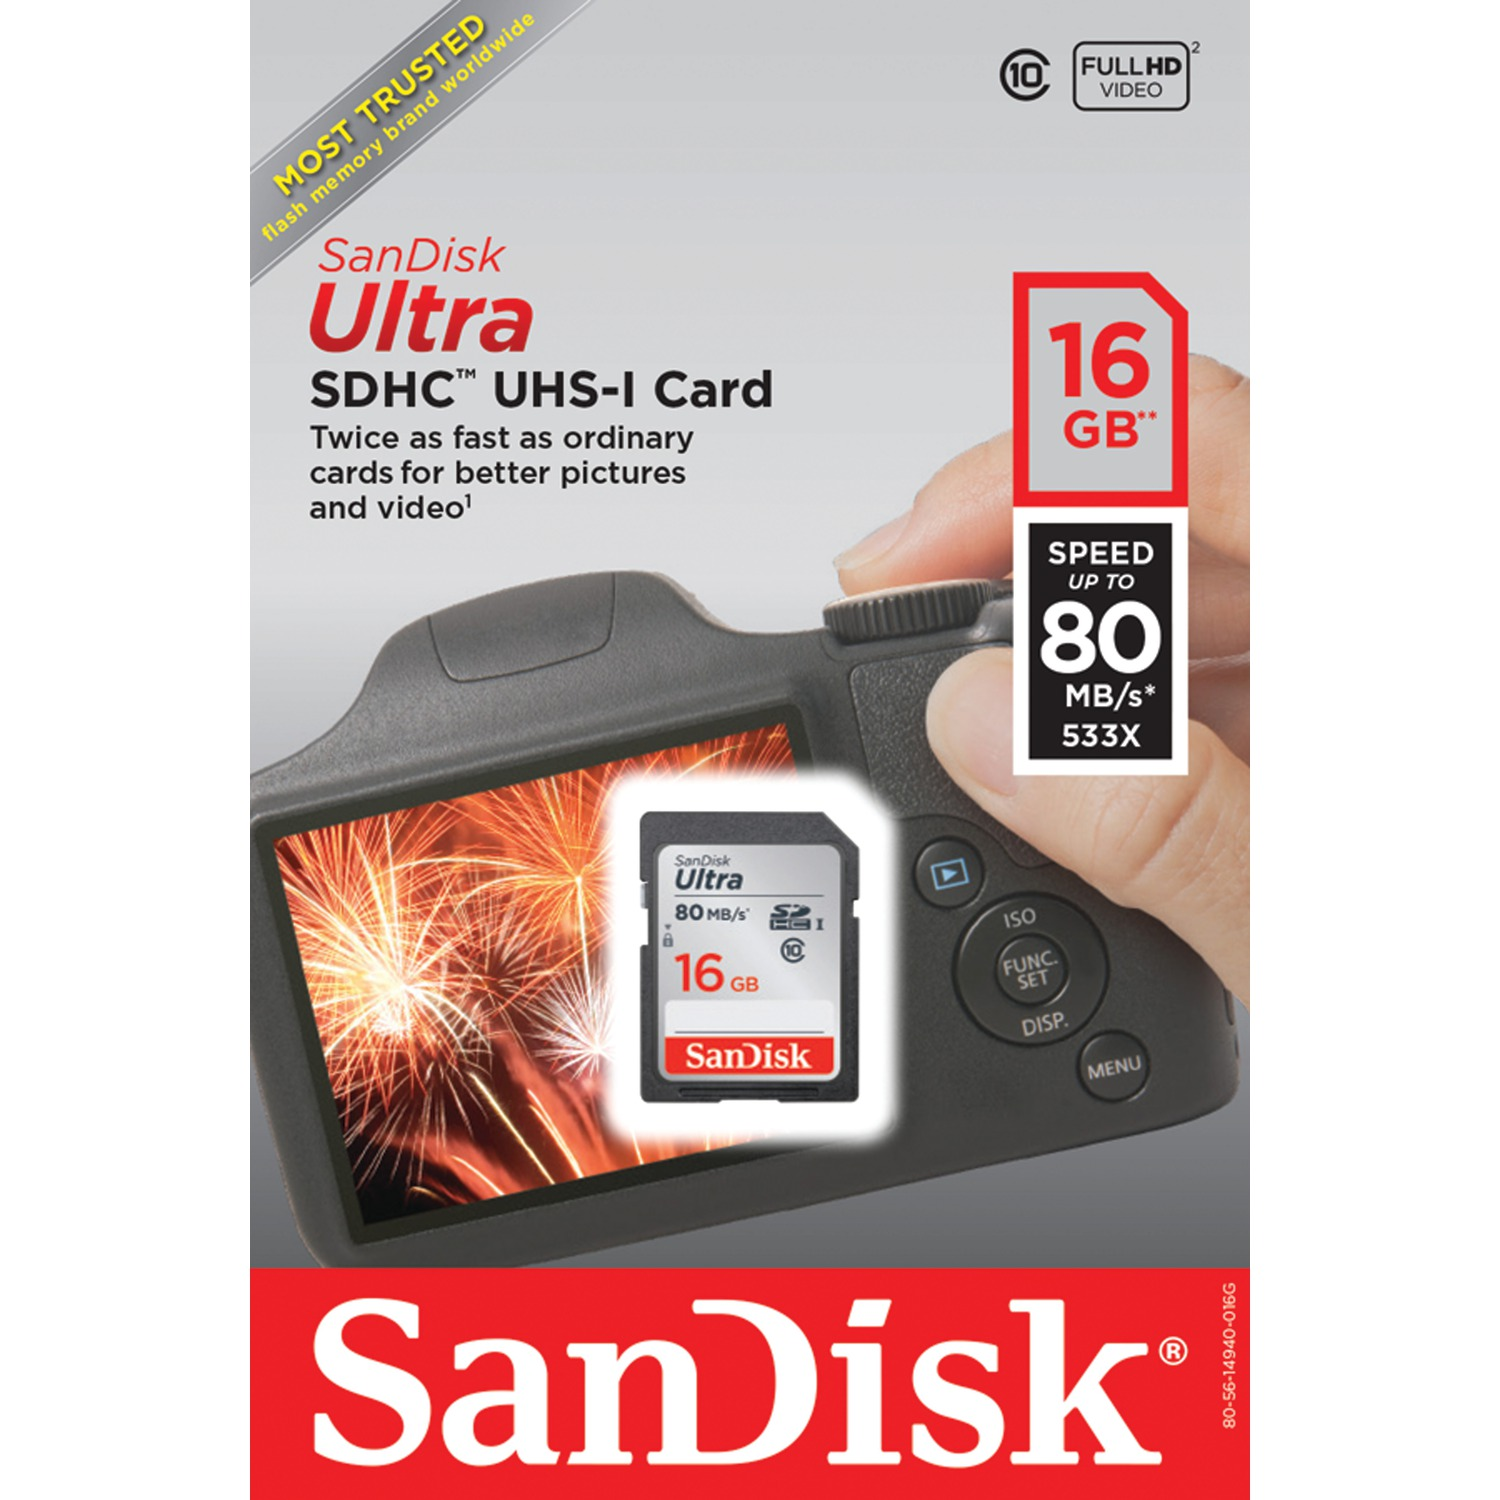 SanDisk 16GB Class 10 SDHC UHS-I Up to 80MB/s Memory Card